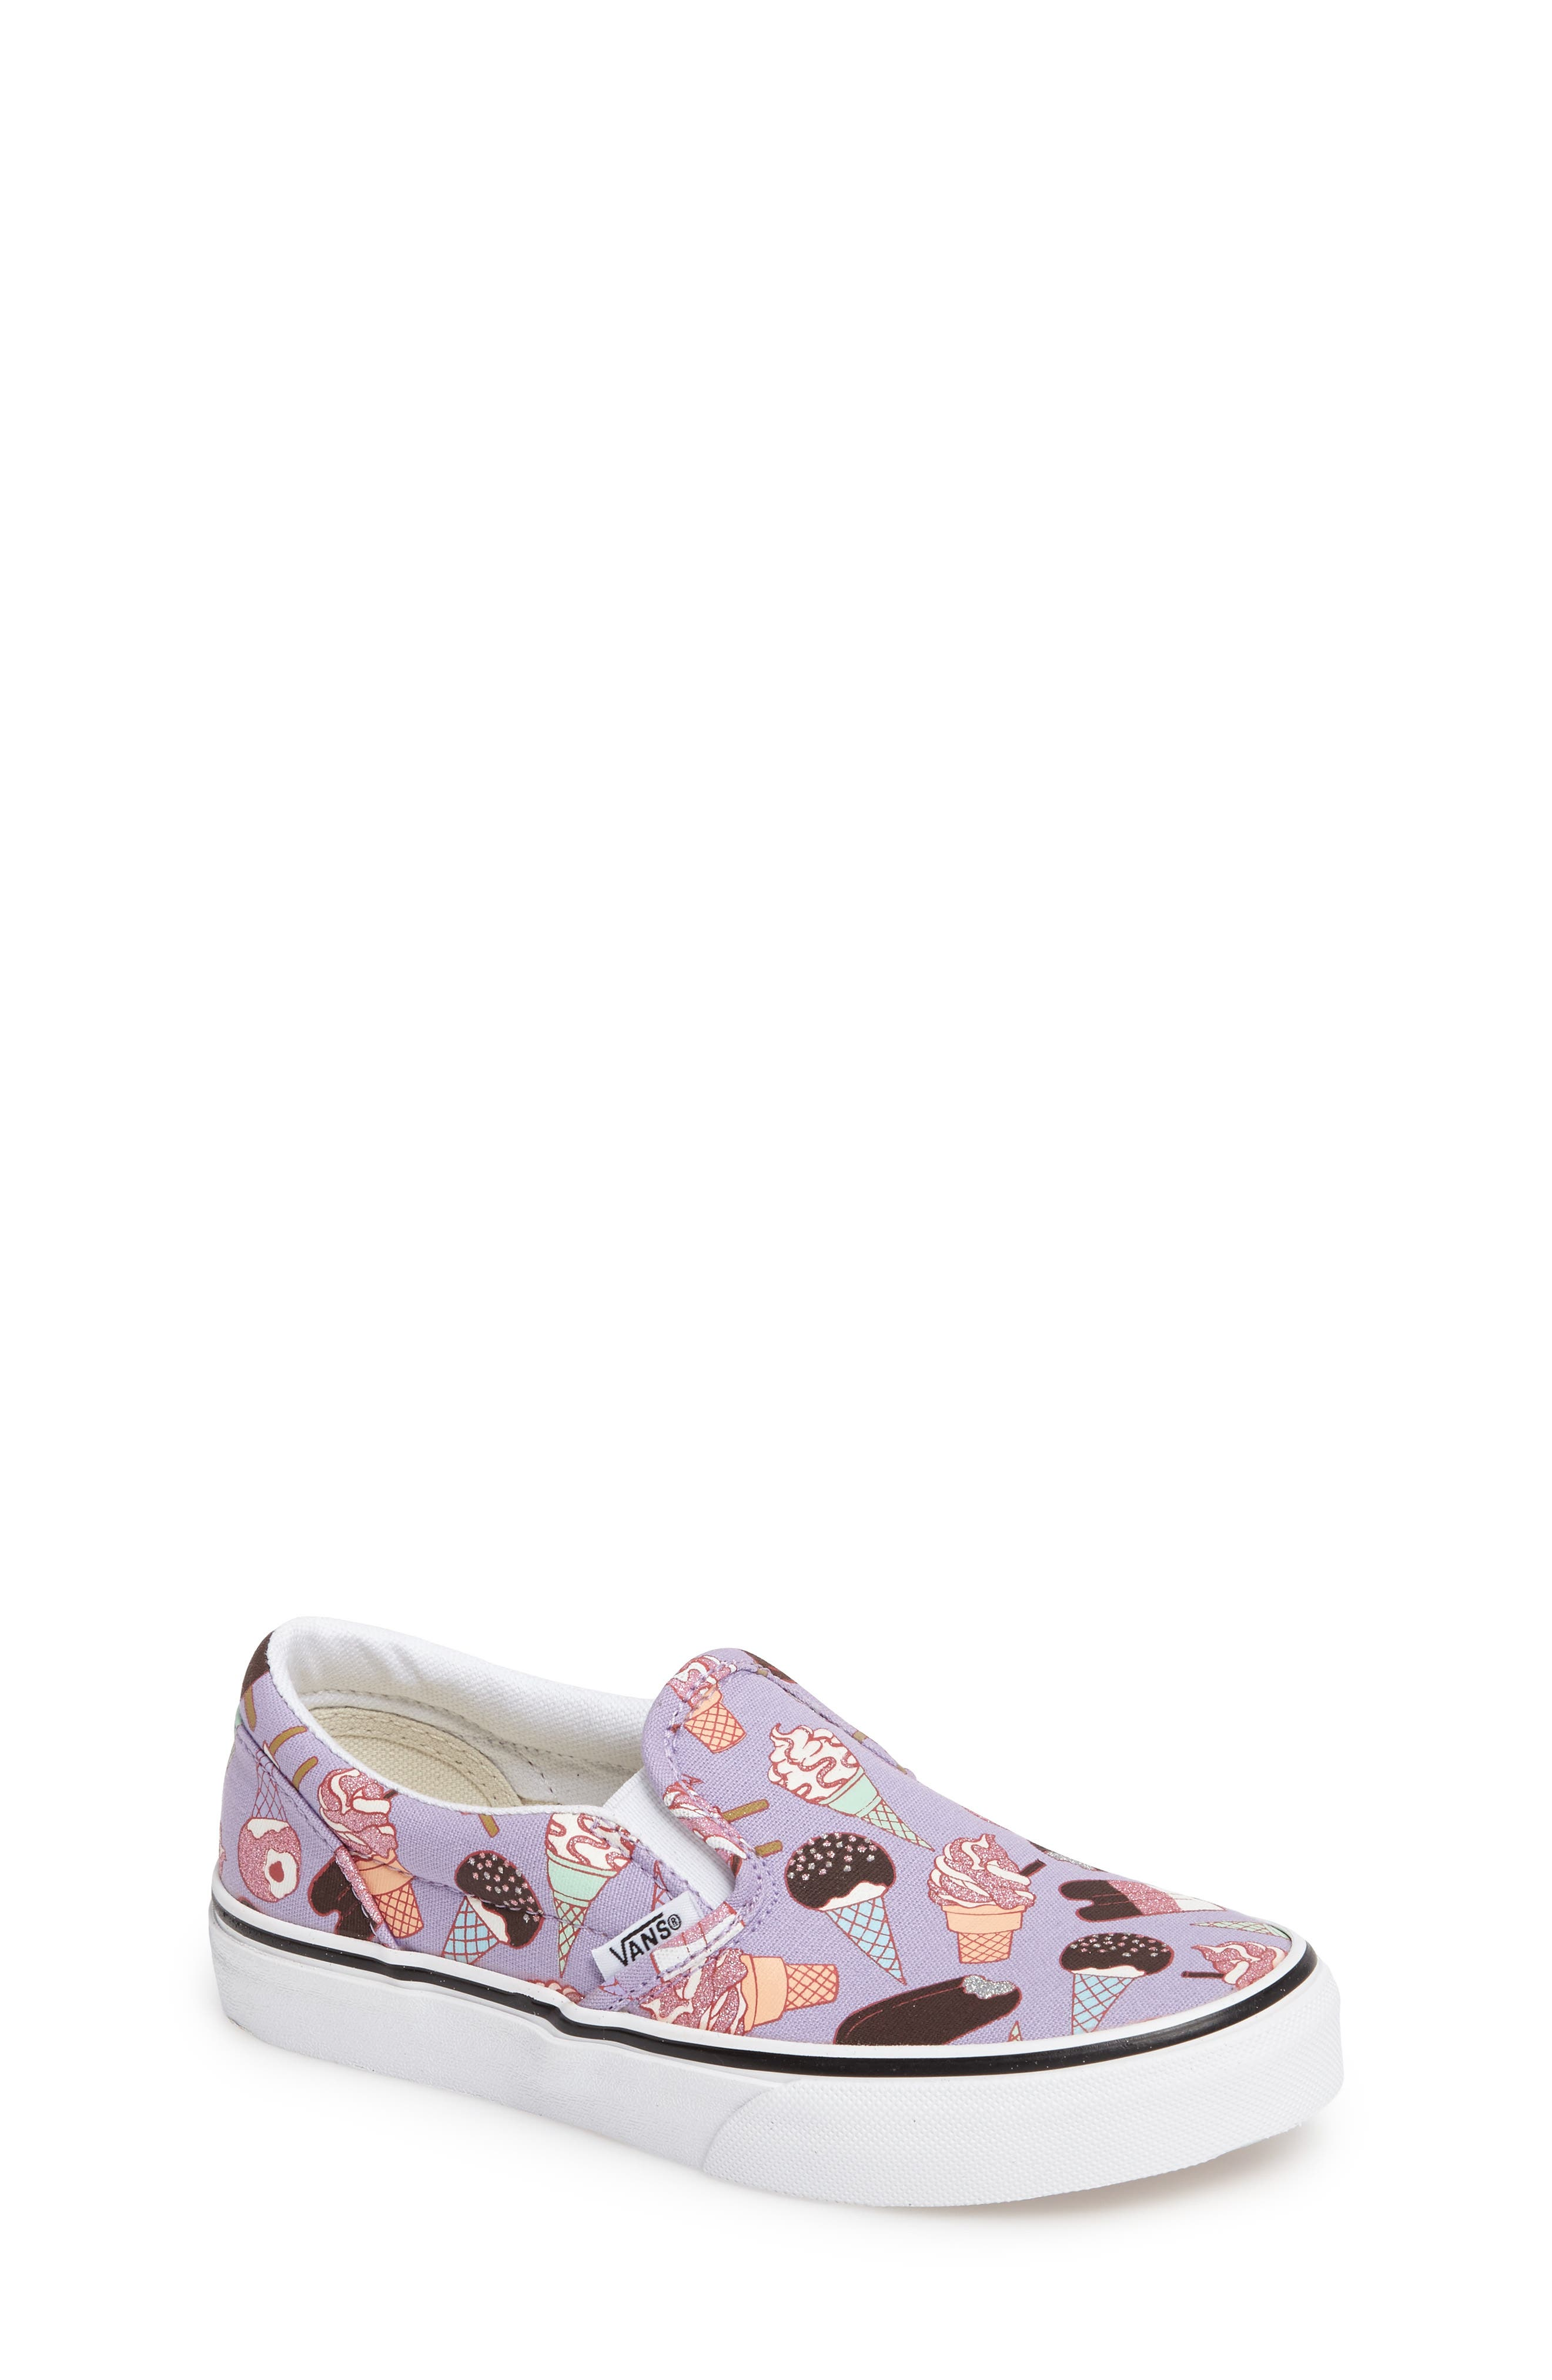 Classic Slip-On,                         Main,                         color, Glitter Lavender/ White